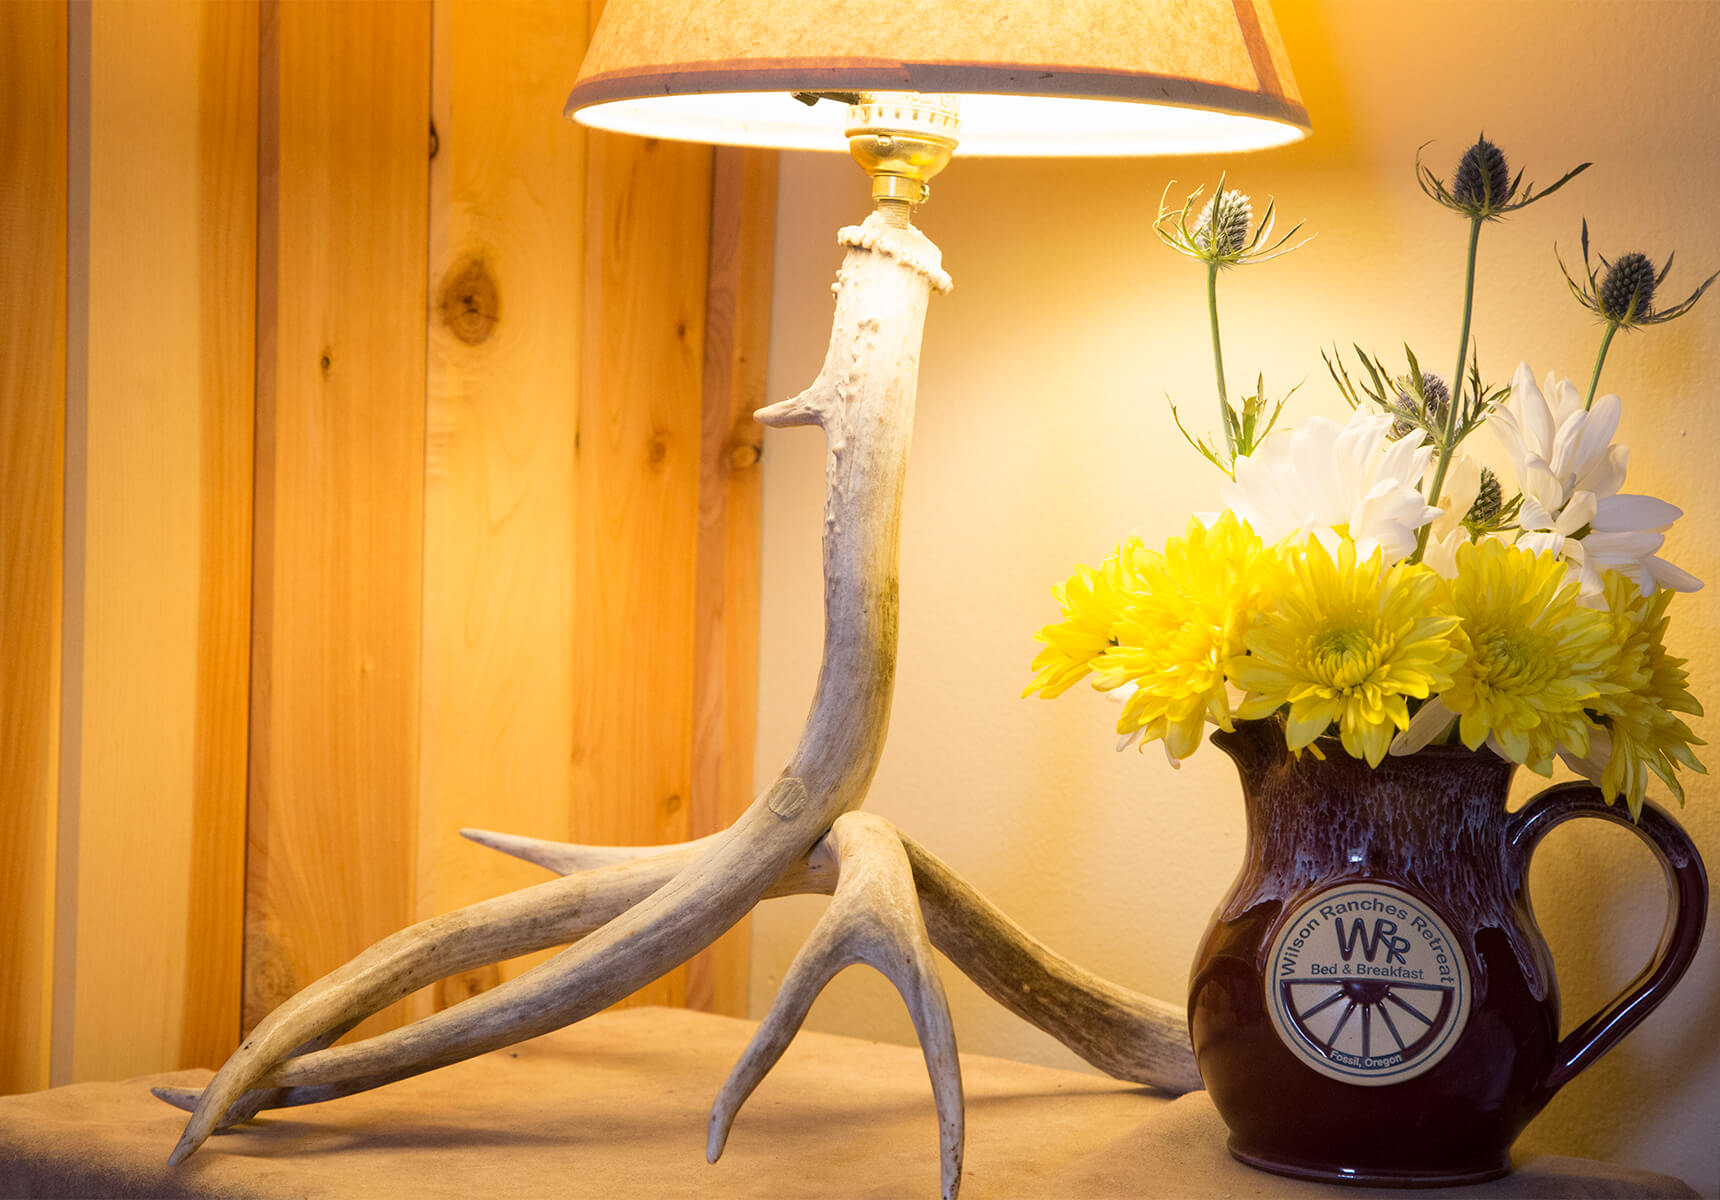 A antler lamp and vase with flowers on a end table